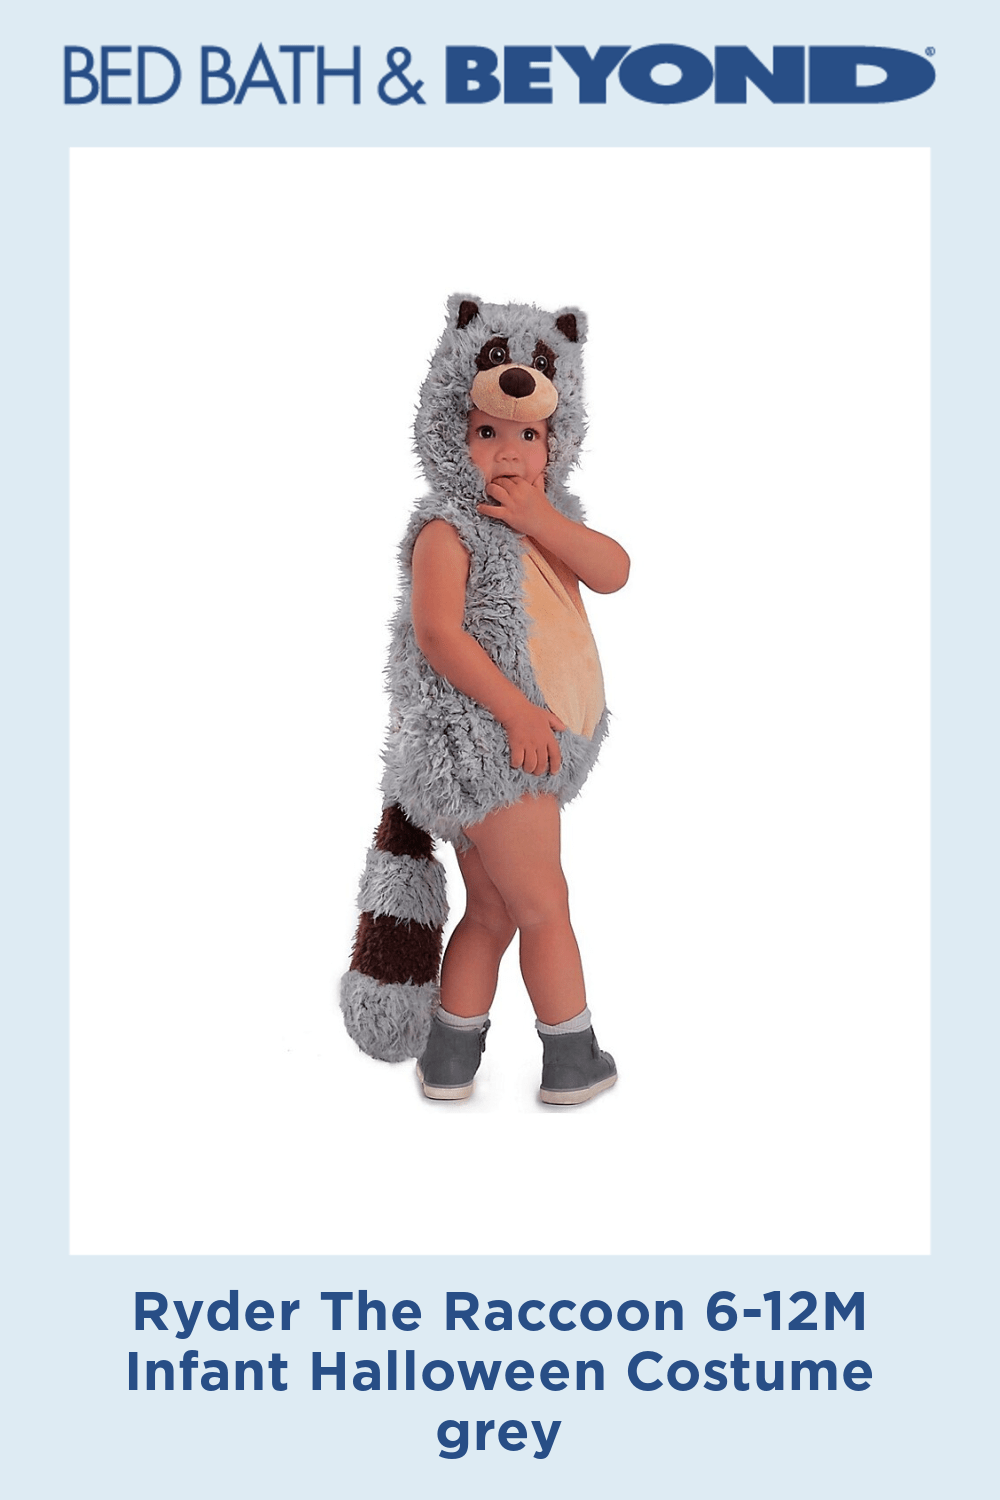 Ryder The Raccoon 6-12M Infant Halloween Costume grey